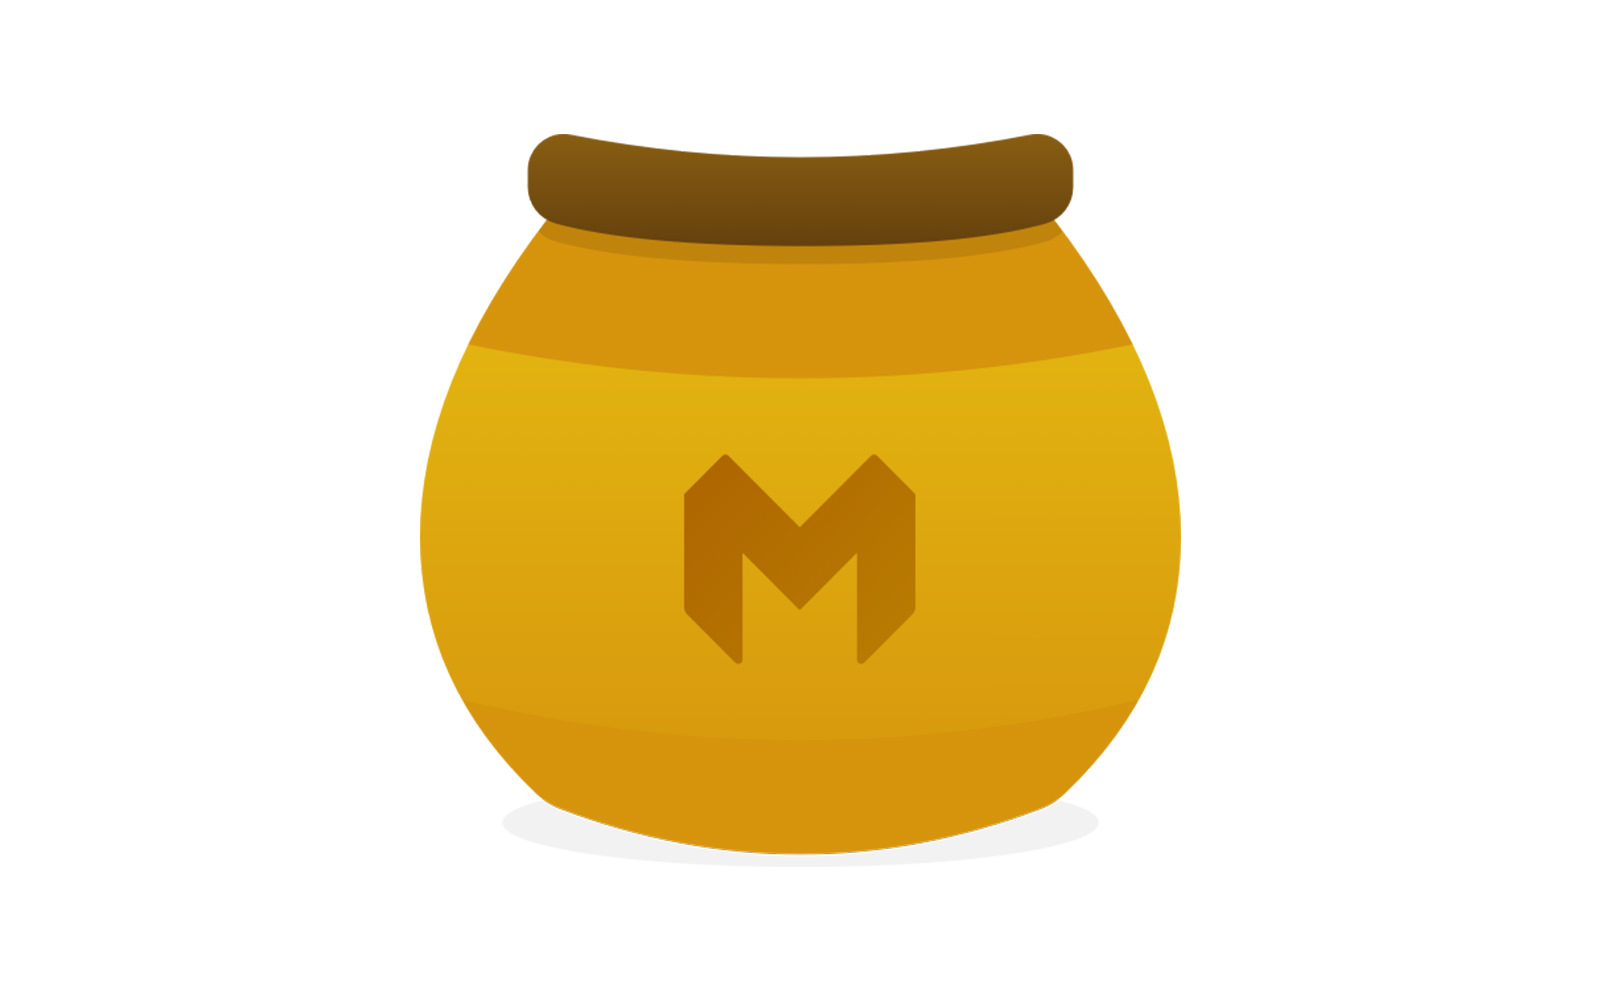 Illustration of a Monzo pot